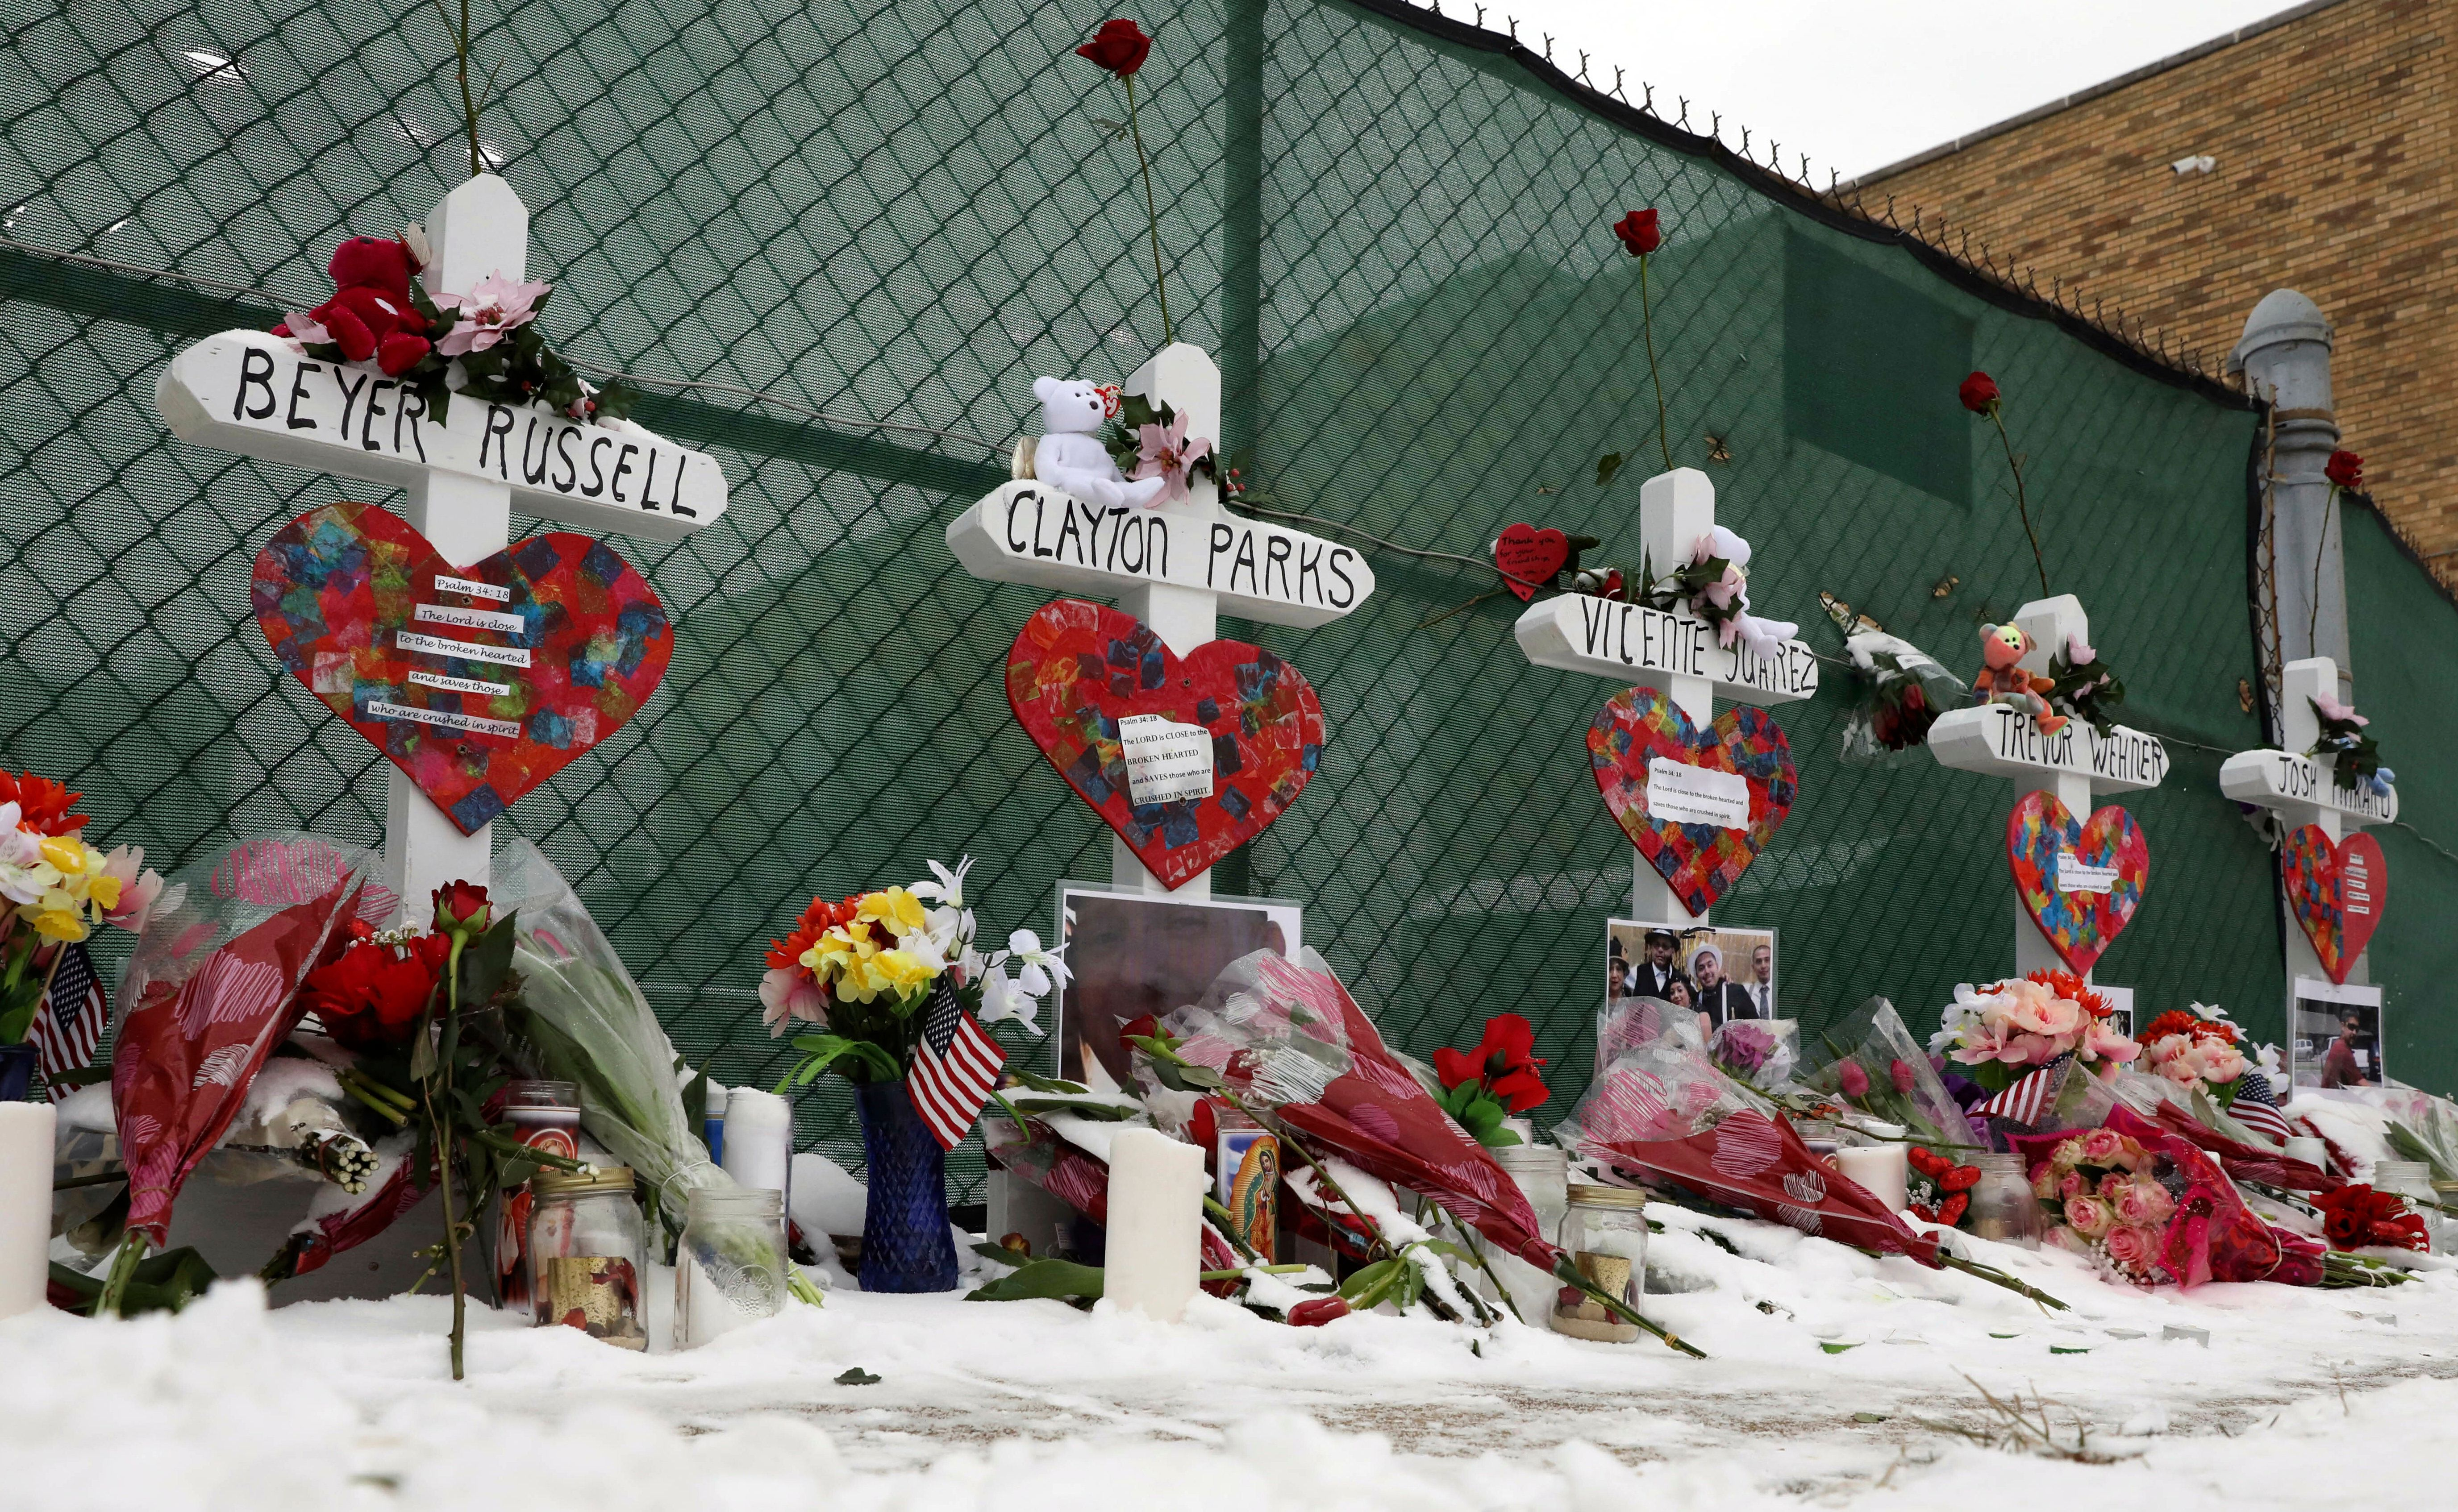 Crosses are placed for the victims of a mass shooting Sunday, Feb. 17, 2019, in Aurora, Ill., near Henry Pratt Co. manufacturing company where several were killed on Friday. Authorities say an initial background check five years ago failed to flag an out-of-state felony conviction that would have prevented a man from buying the gun he used in the mass shooting. (AP Photo/Nam Y. Huh)